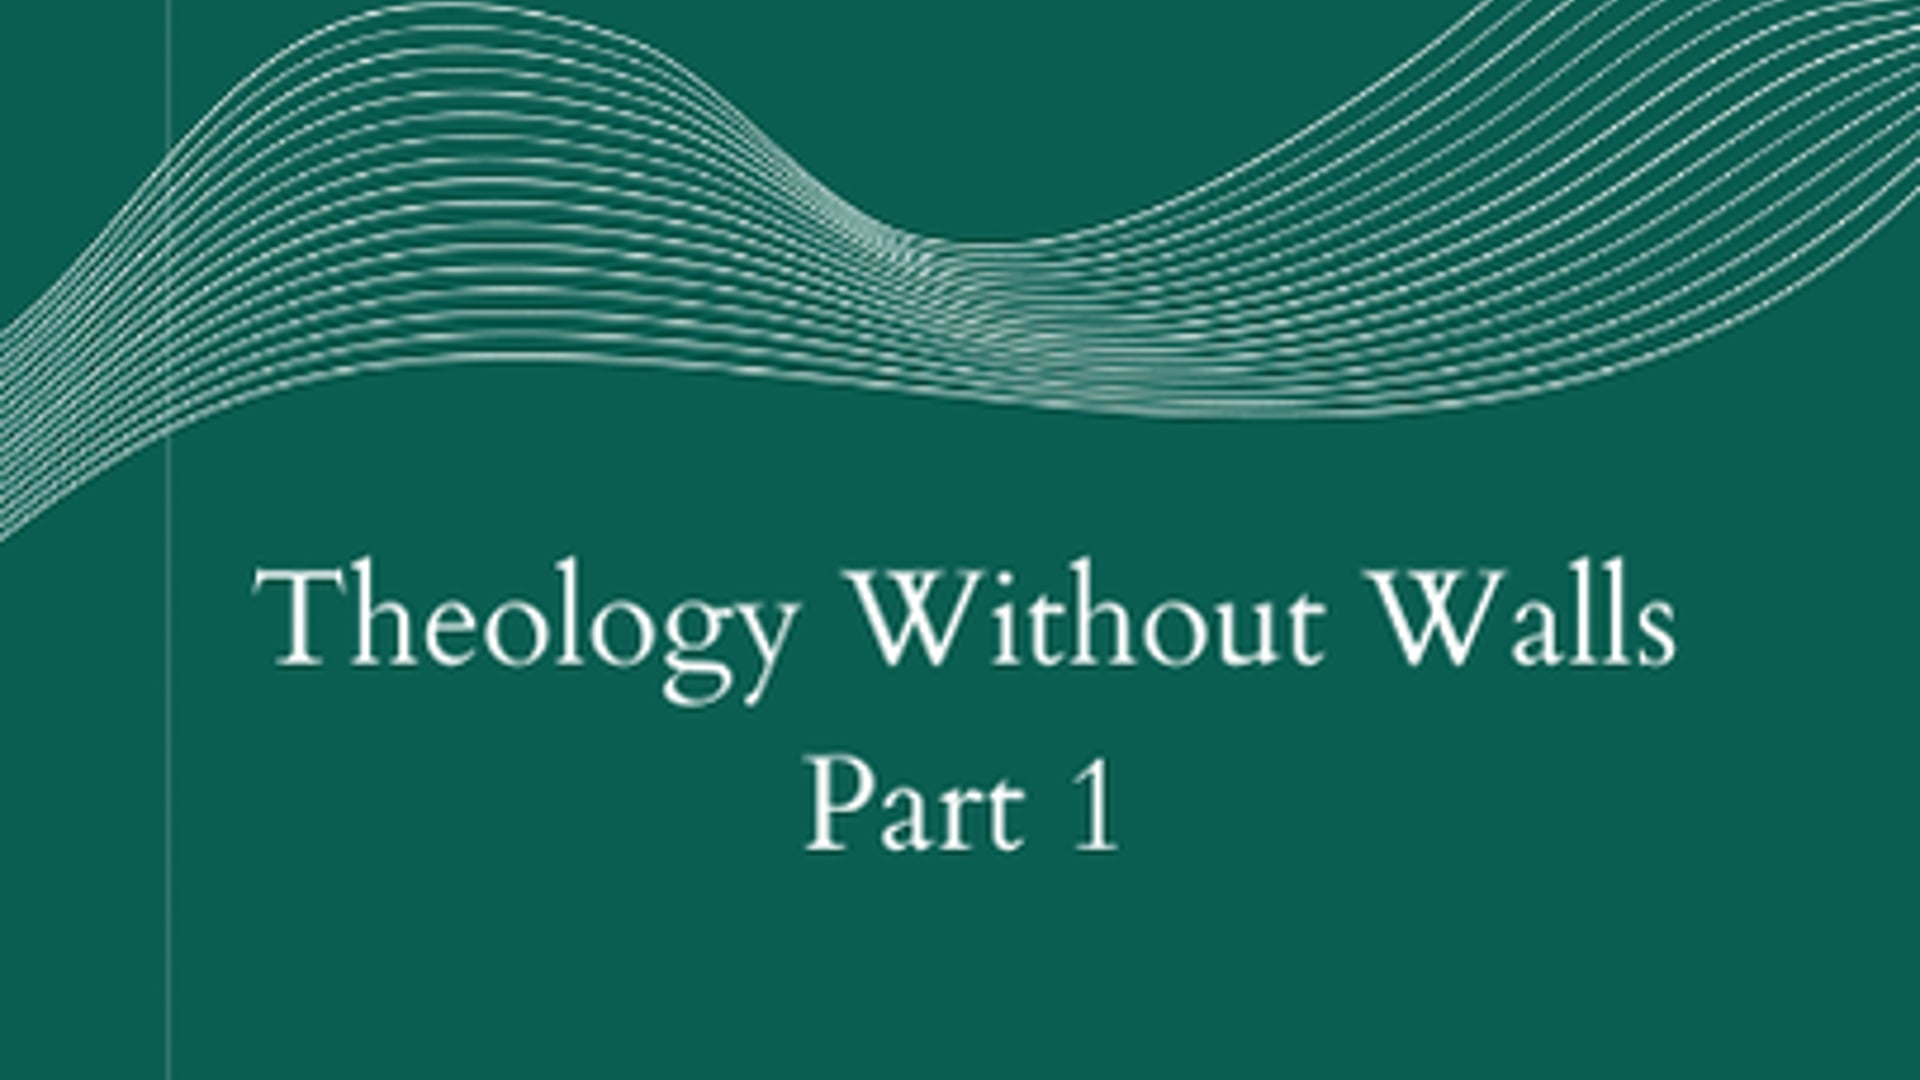 Theology Without Walls Part 1